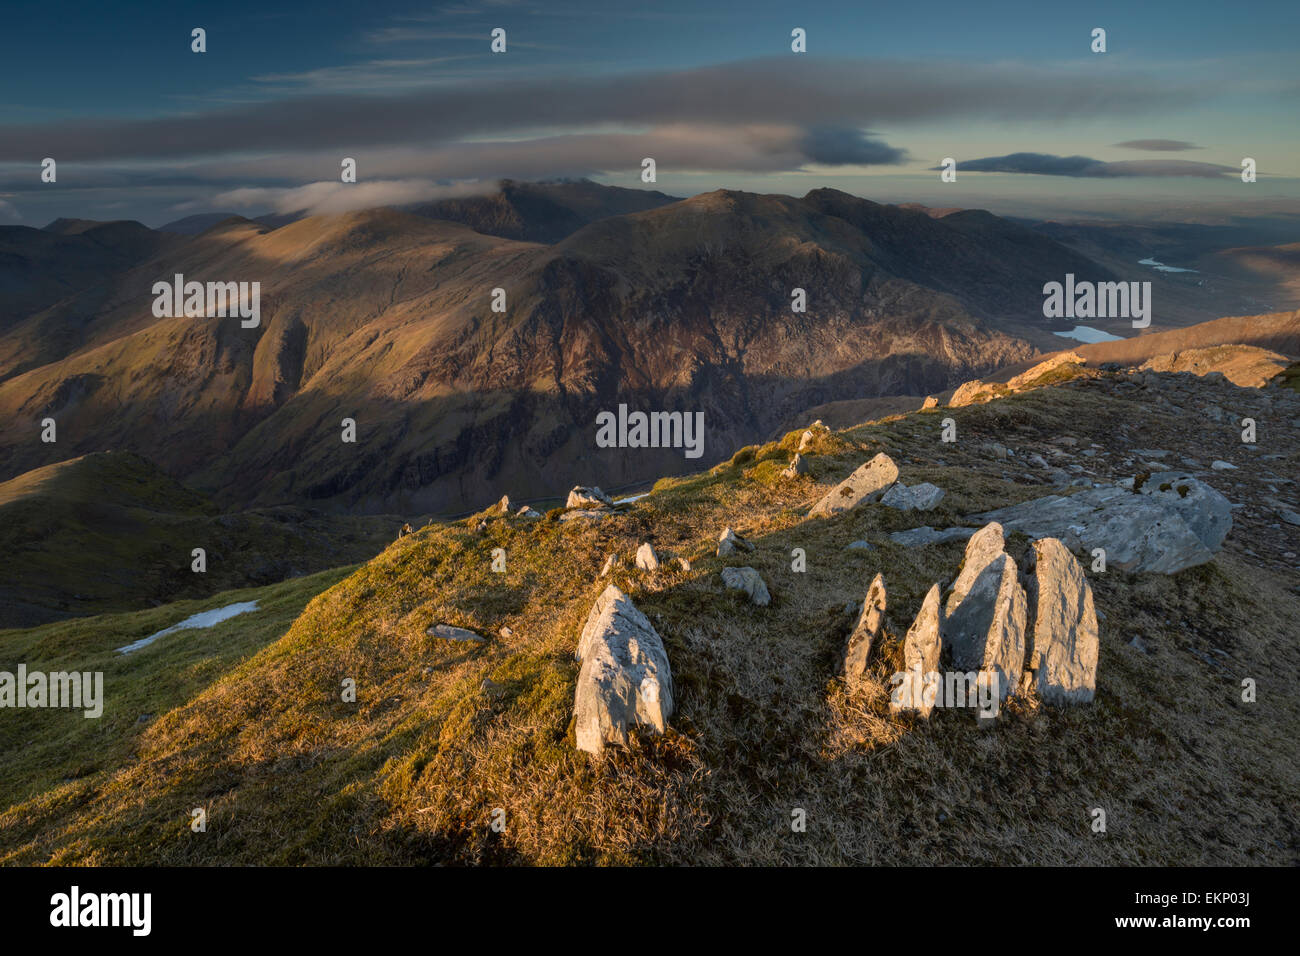 Sunsets view form Garnedd Ugain, Snowdon Massif, Snowdonia National Park, Wales, UK Stock Photo